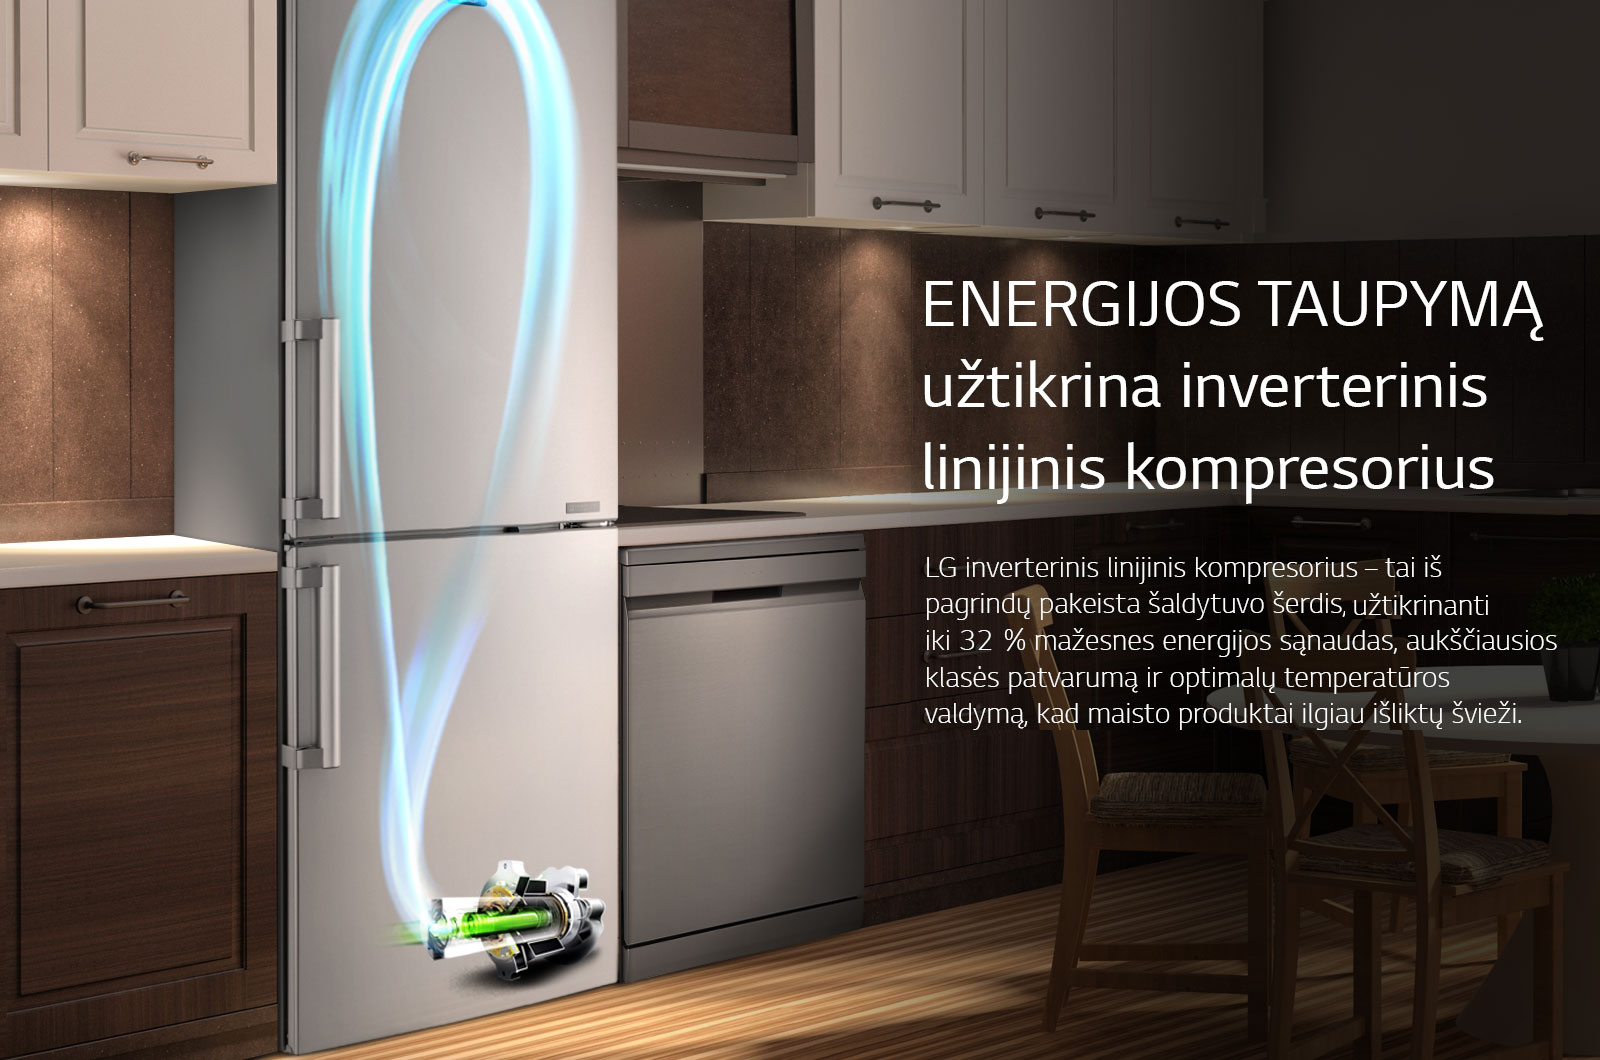 Energy Saving with Inverter Linear Compressor